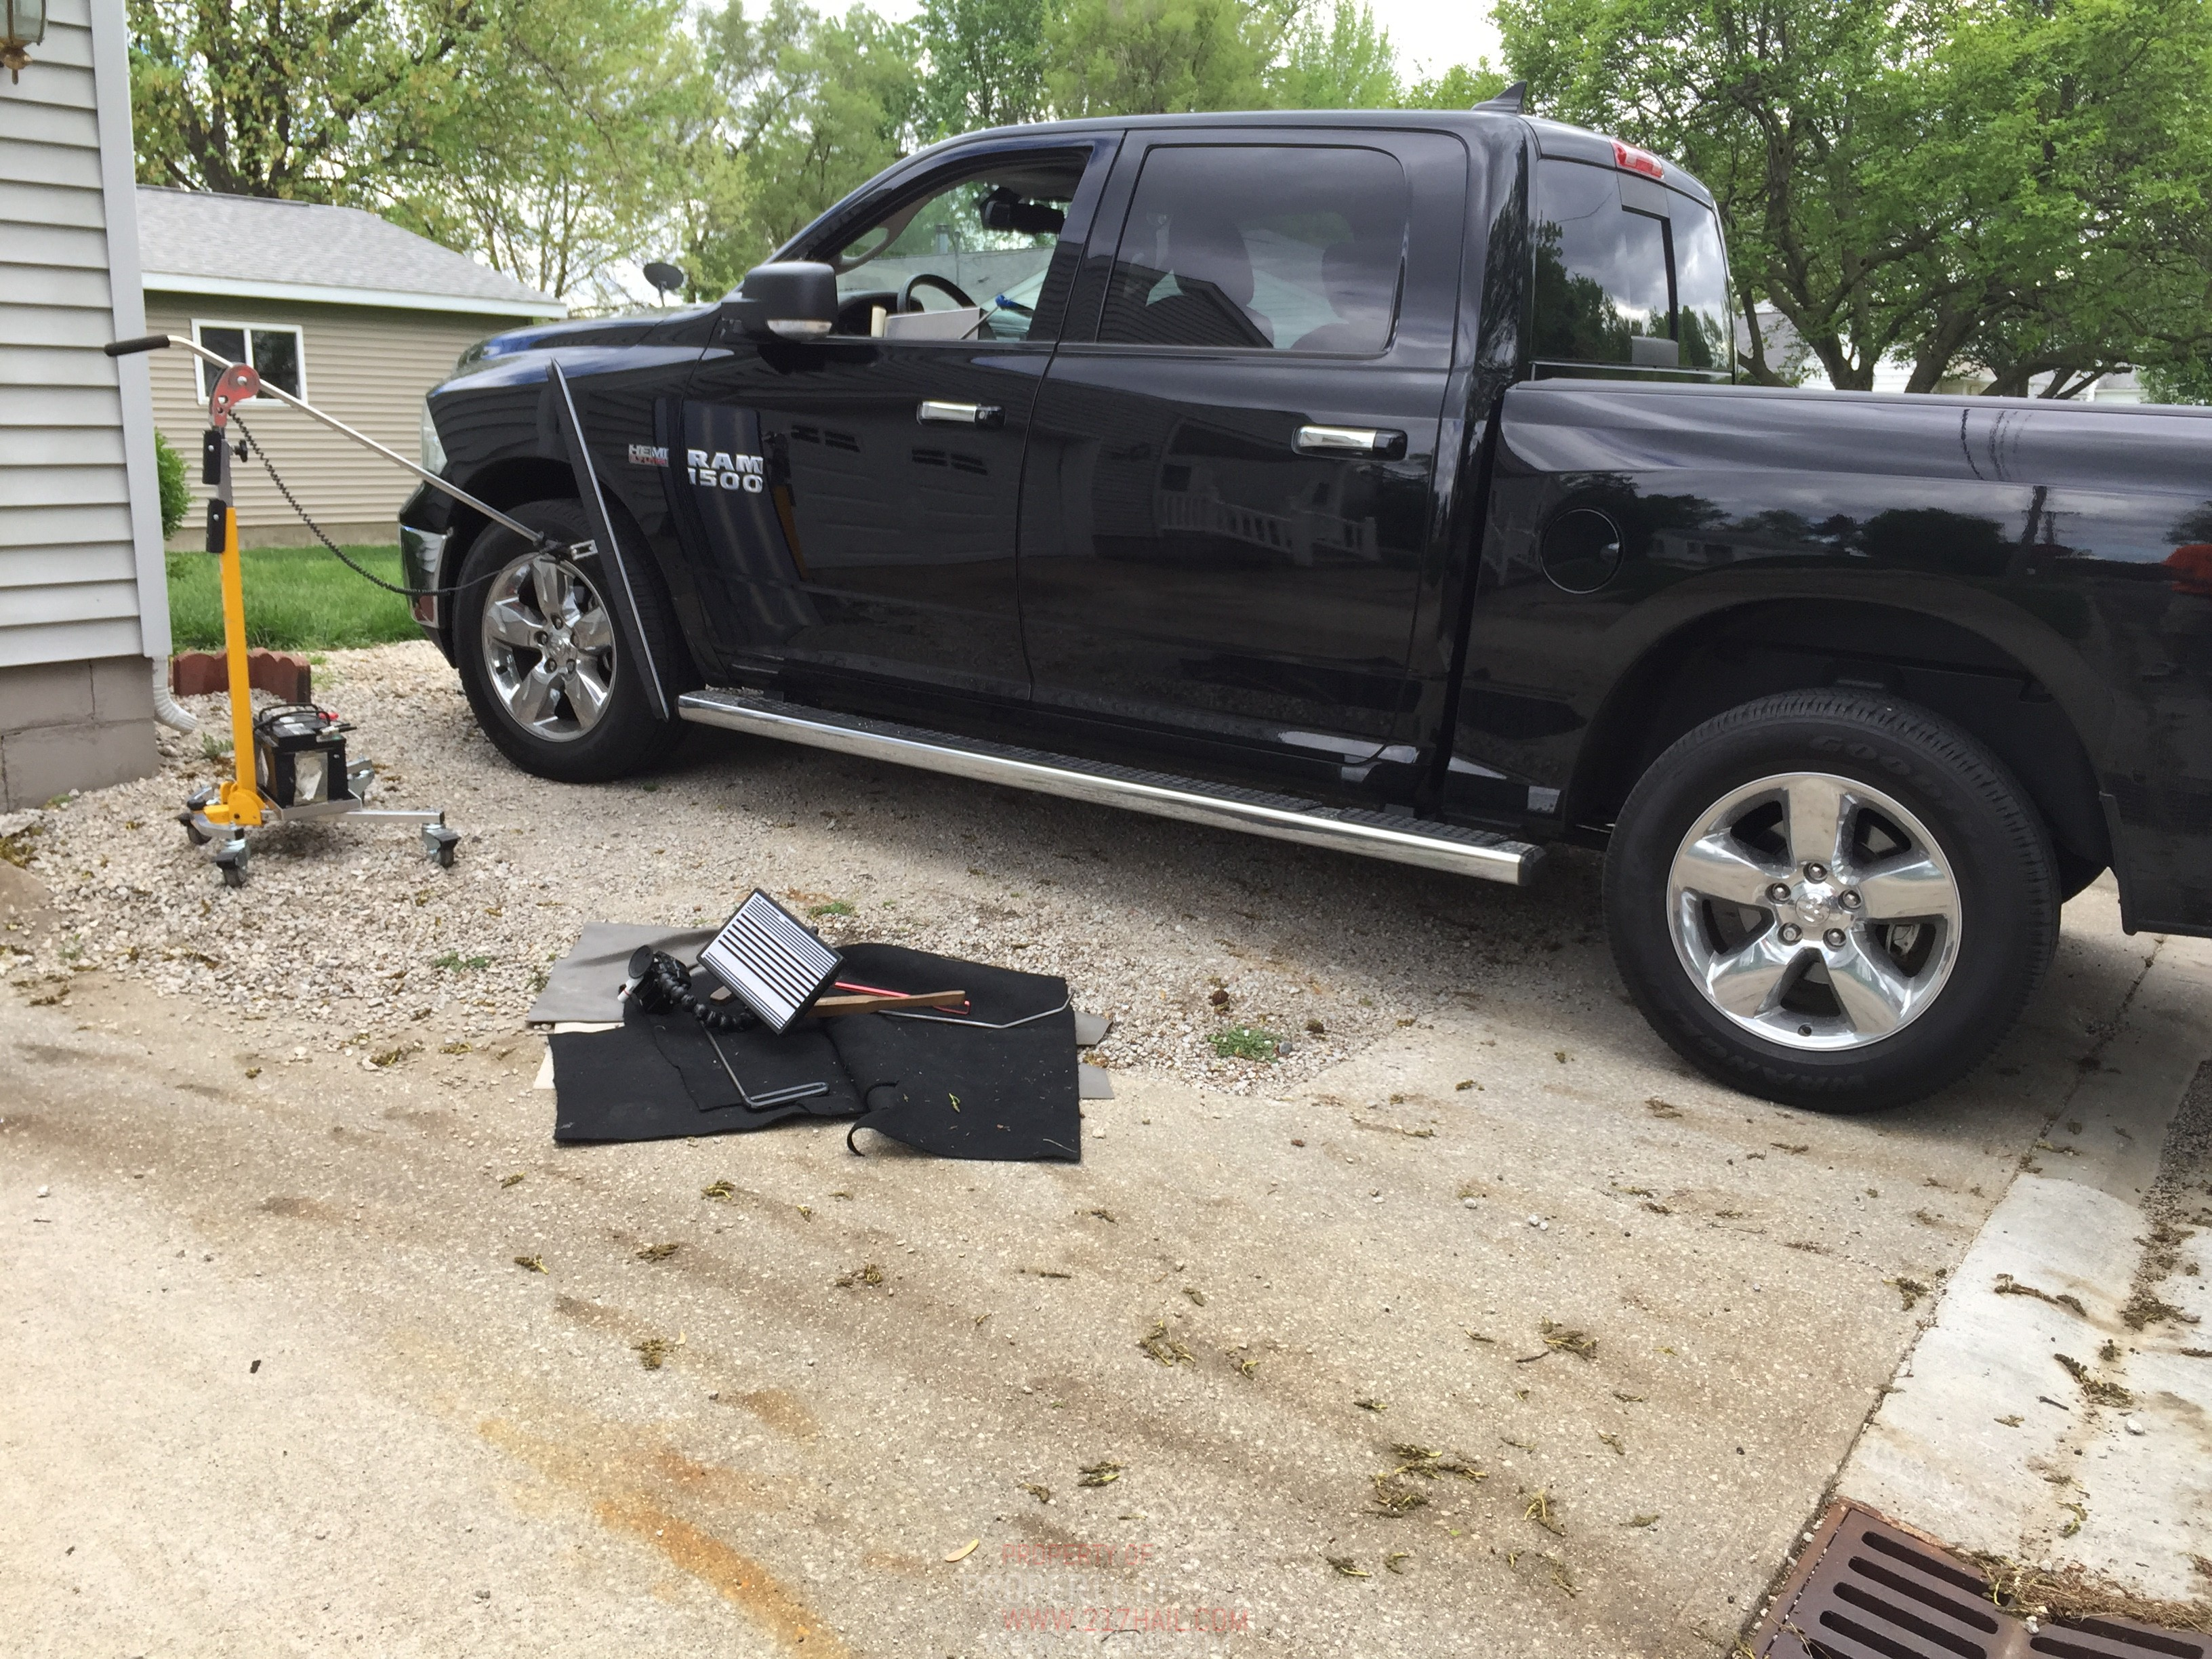 2013 Dodge Ram Drivers Door Dent Removal, Taylorville, IL. Springfield, IL. Mobile Dent repair, http://217dent.com